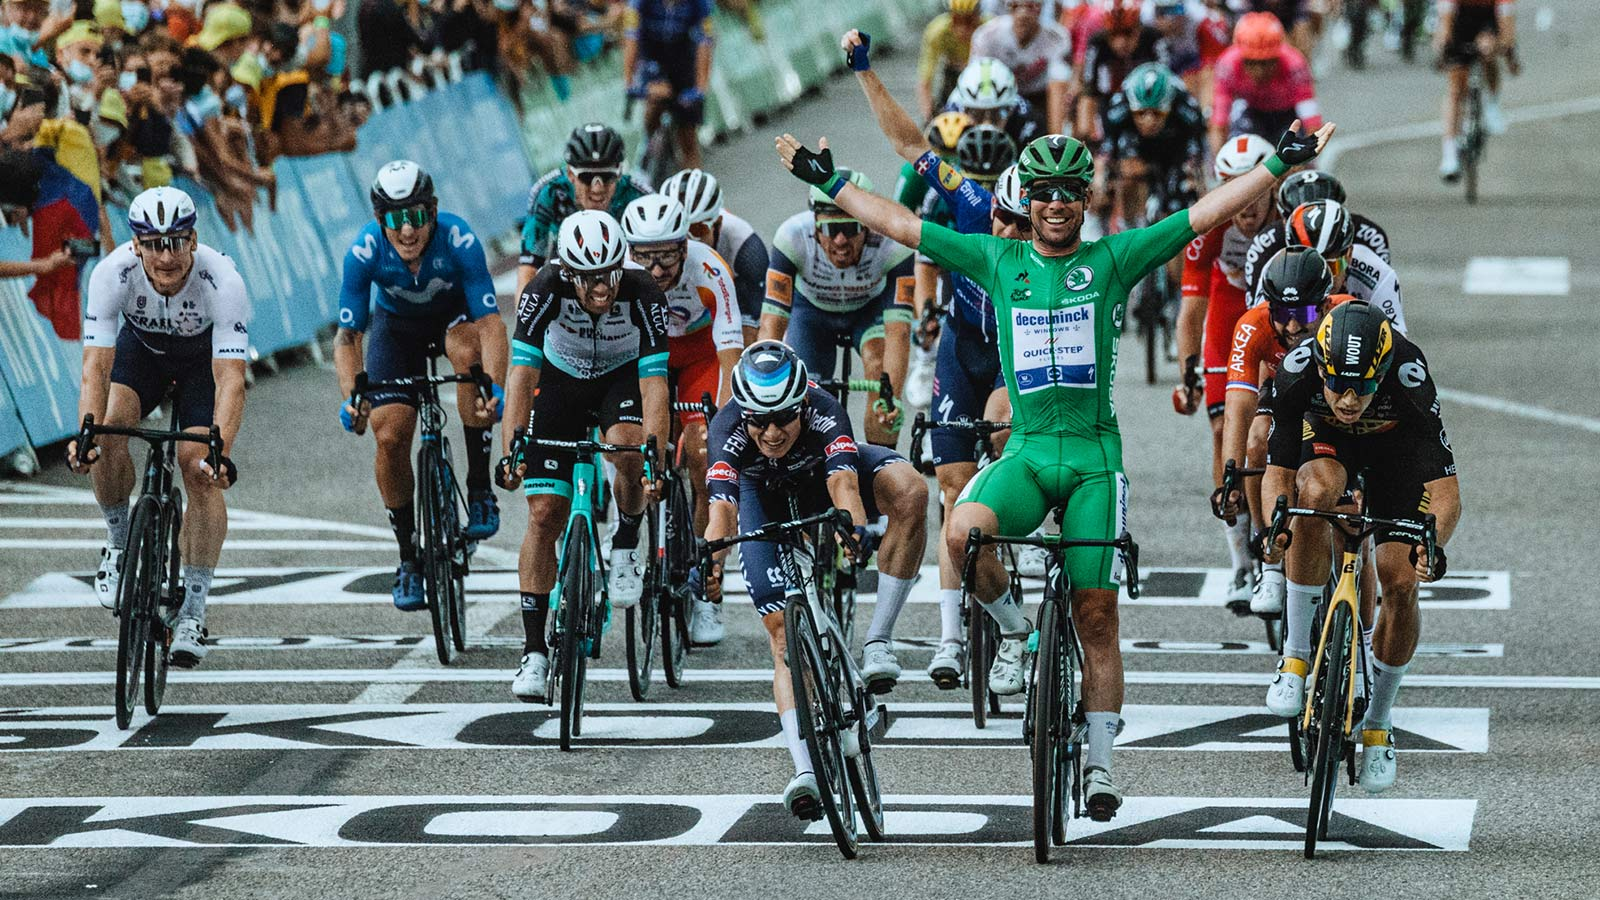 2021 Mark Cavendish 3x Tour de France stage winning green sprinter jersey Specialized S-Works Tarmac SL7, photo by Chris Auld Stage 10 Valence win